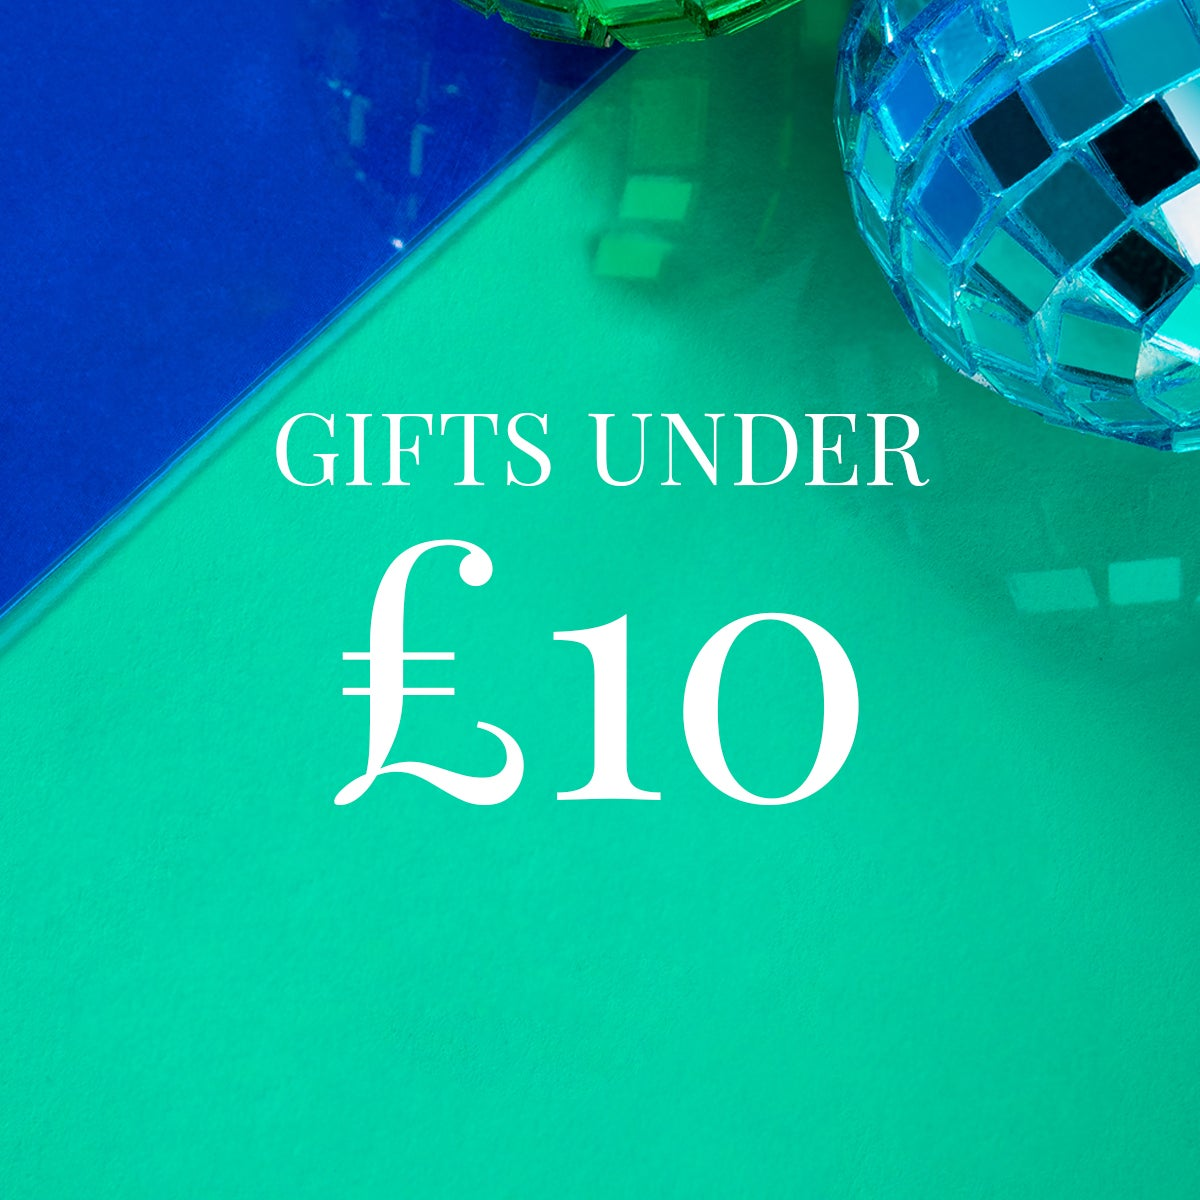 Gifts under £10 at John Greed